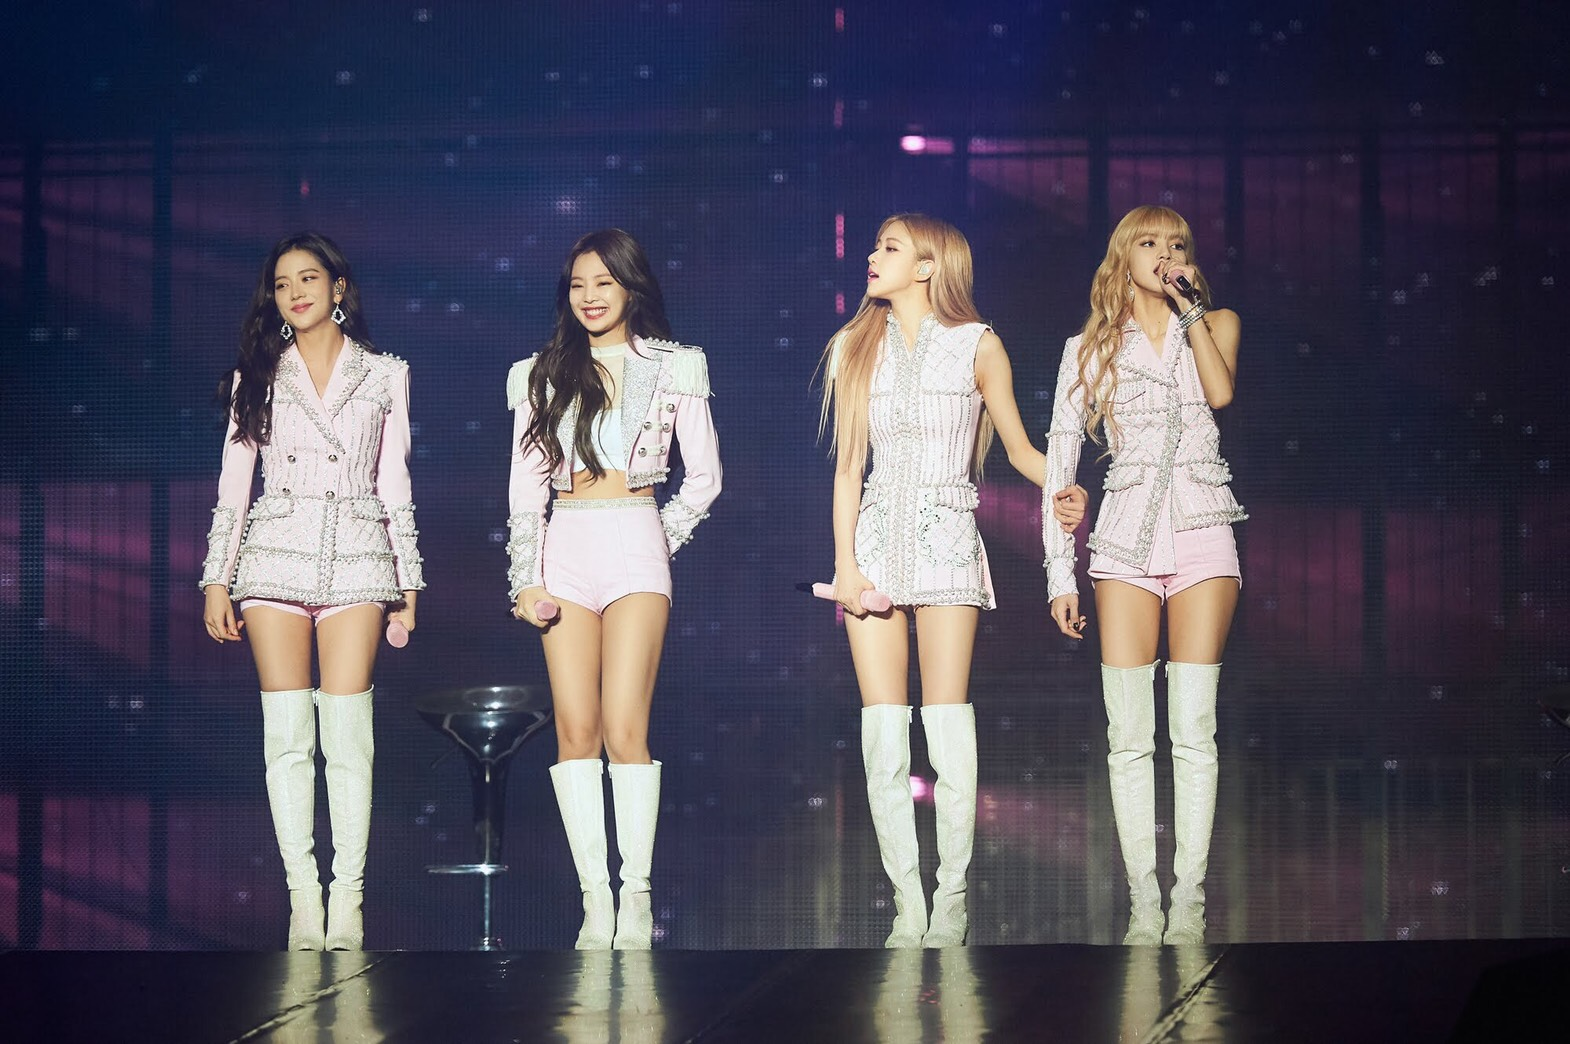 BLACKPINK Delivers Fiery Performances In Singapore Right After The US